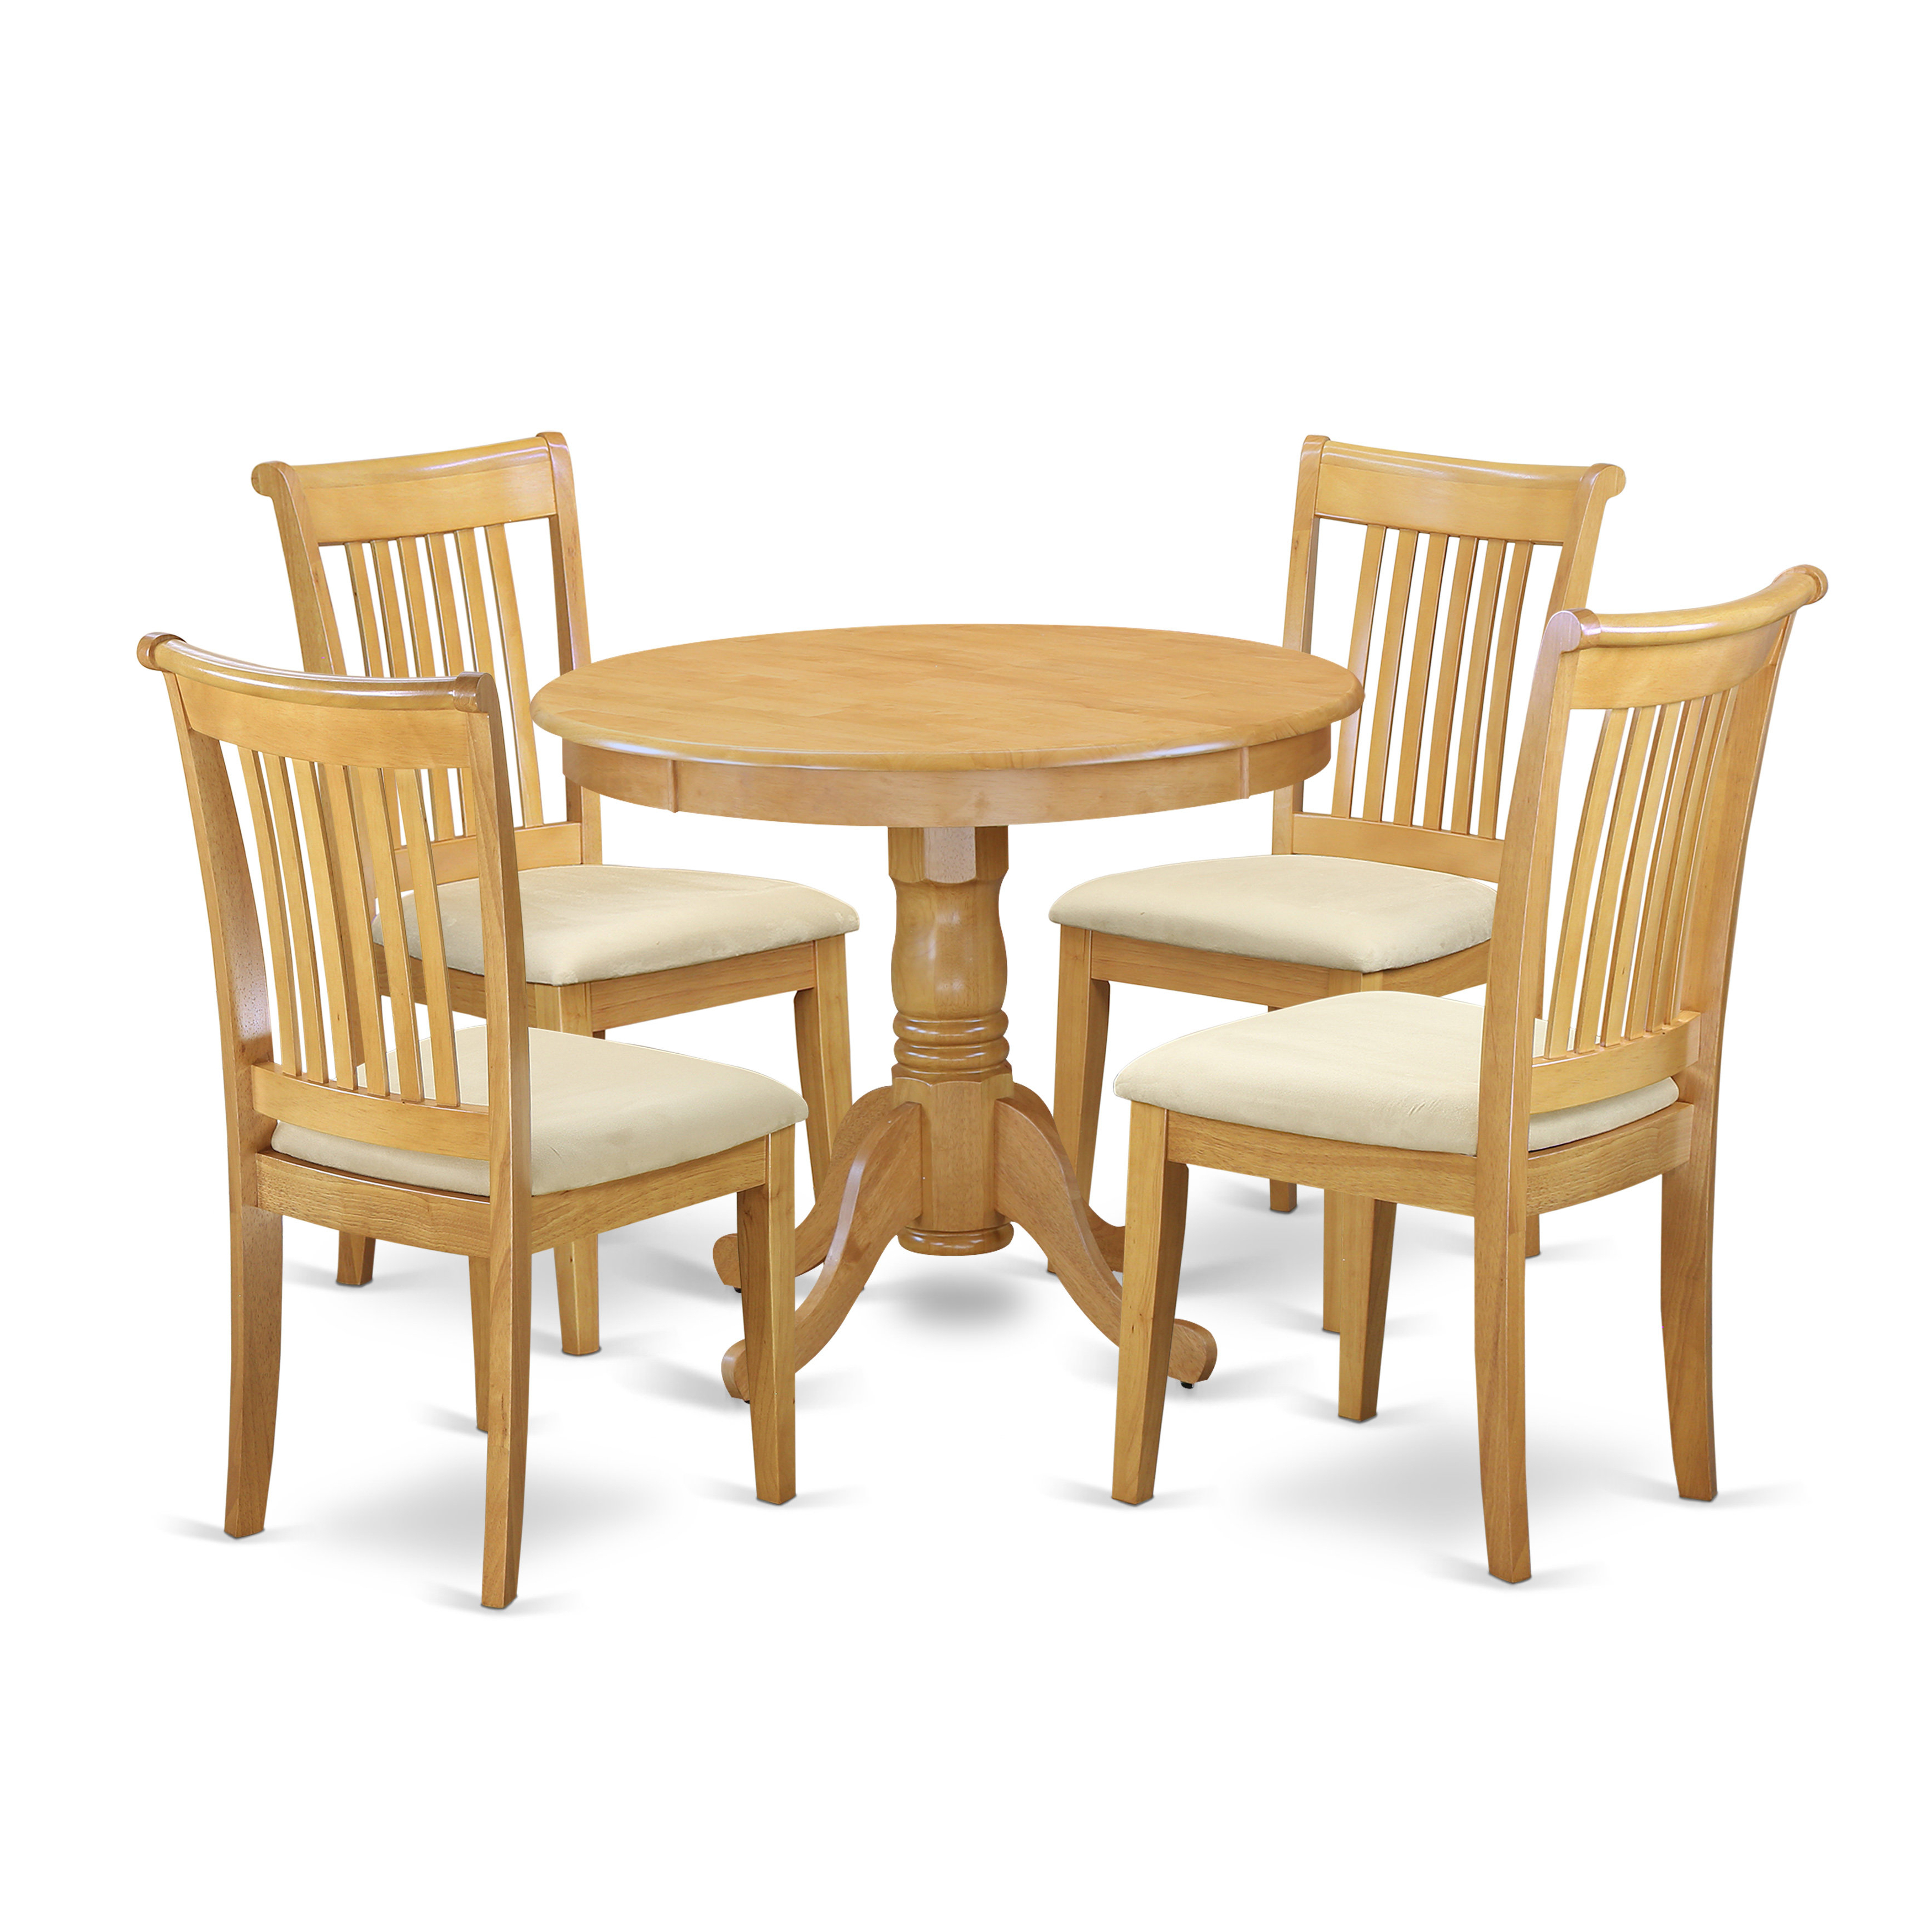 5 Piece Breakfast Nook Dining Sets Throughout Well Known August Grove Asher 5 Piece Breakfast Nook Dining Set (View 17 of 25)